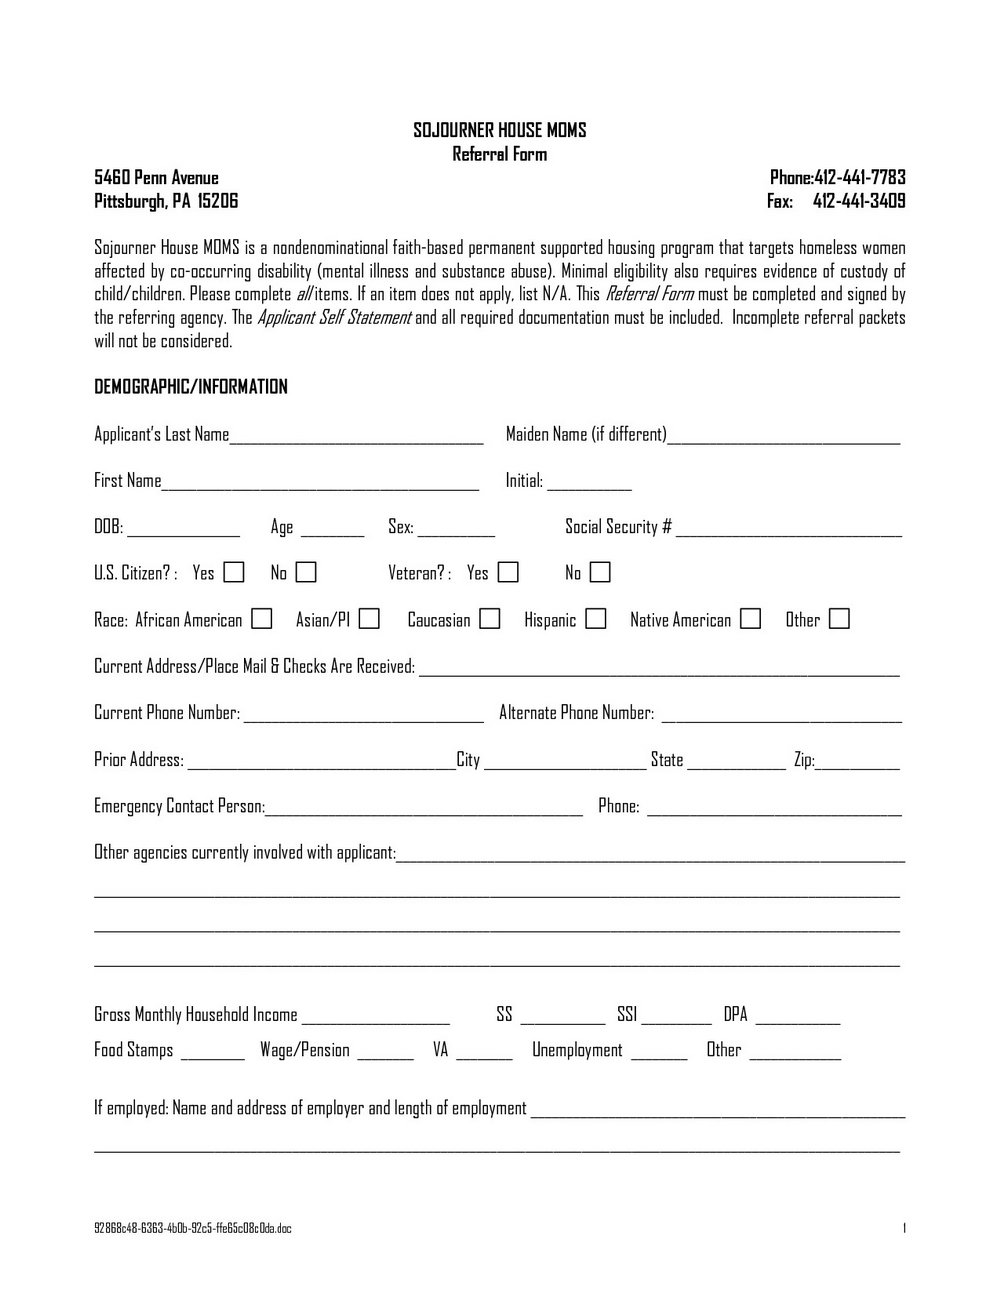 Forms For Eviction In California